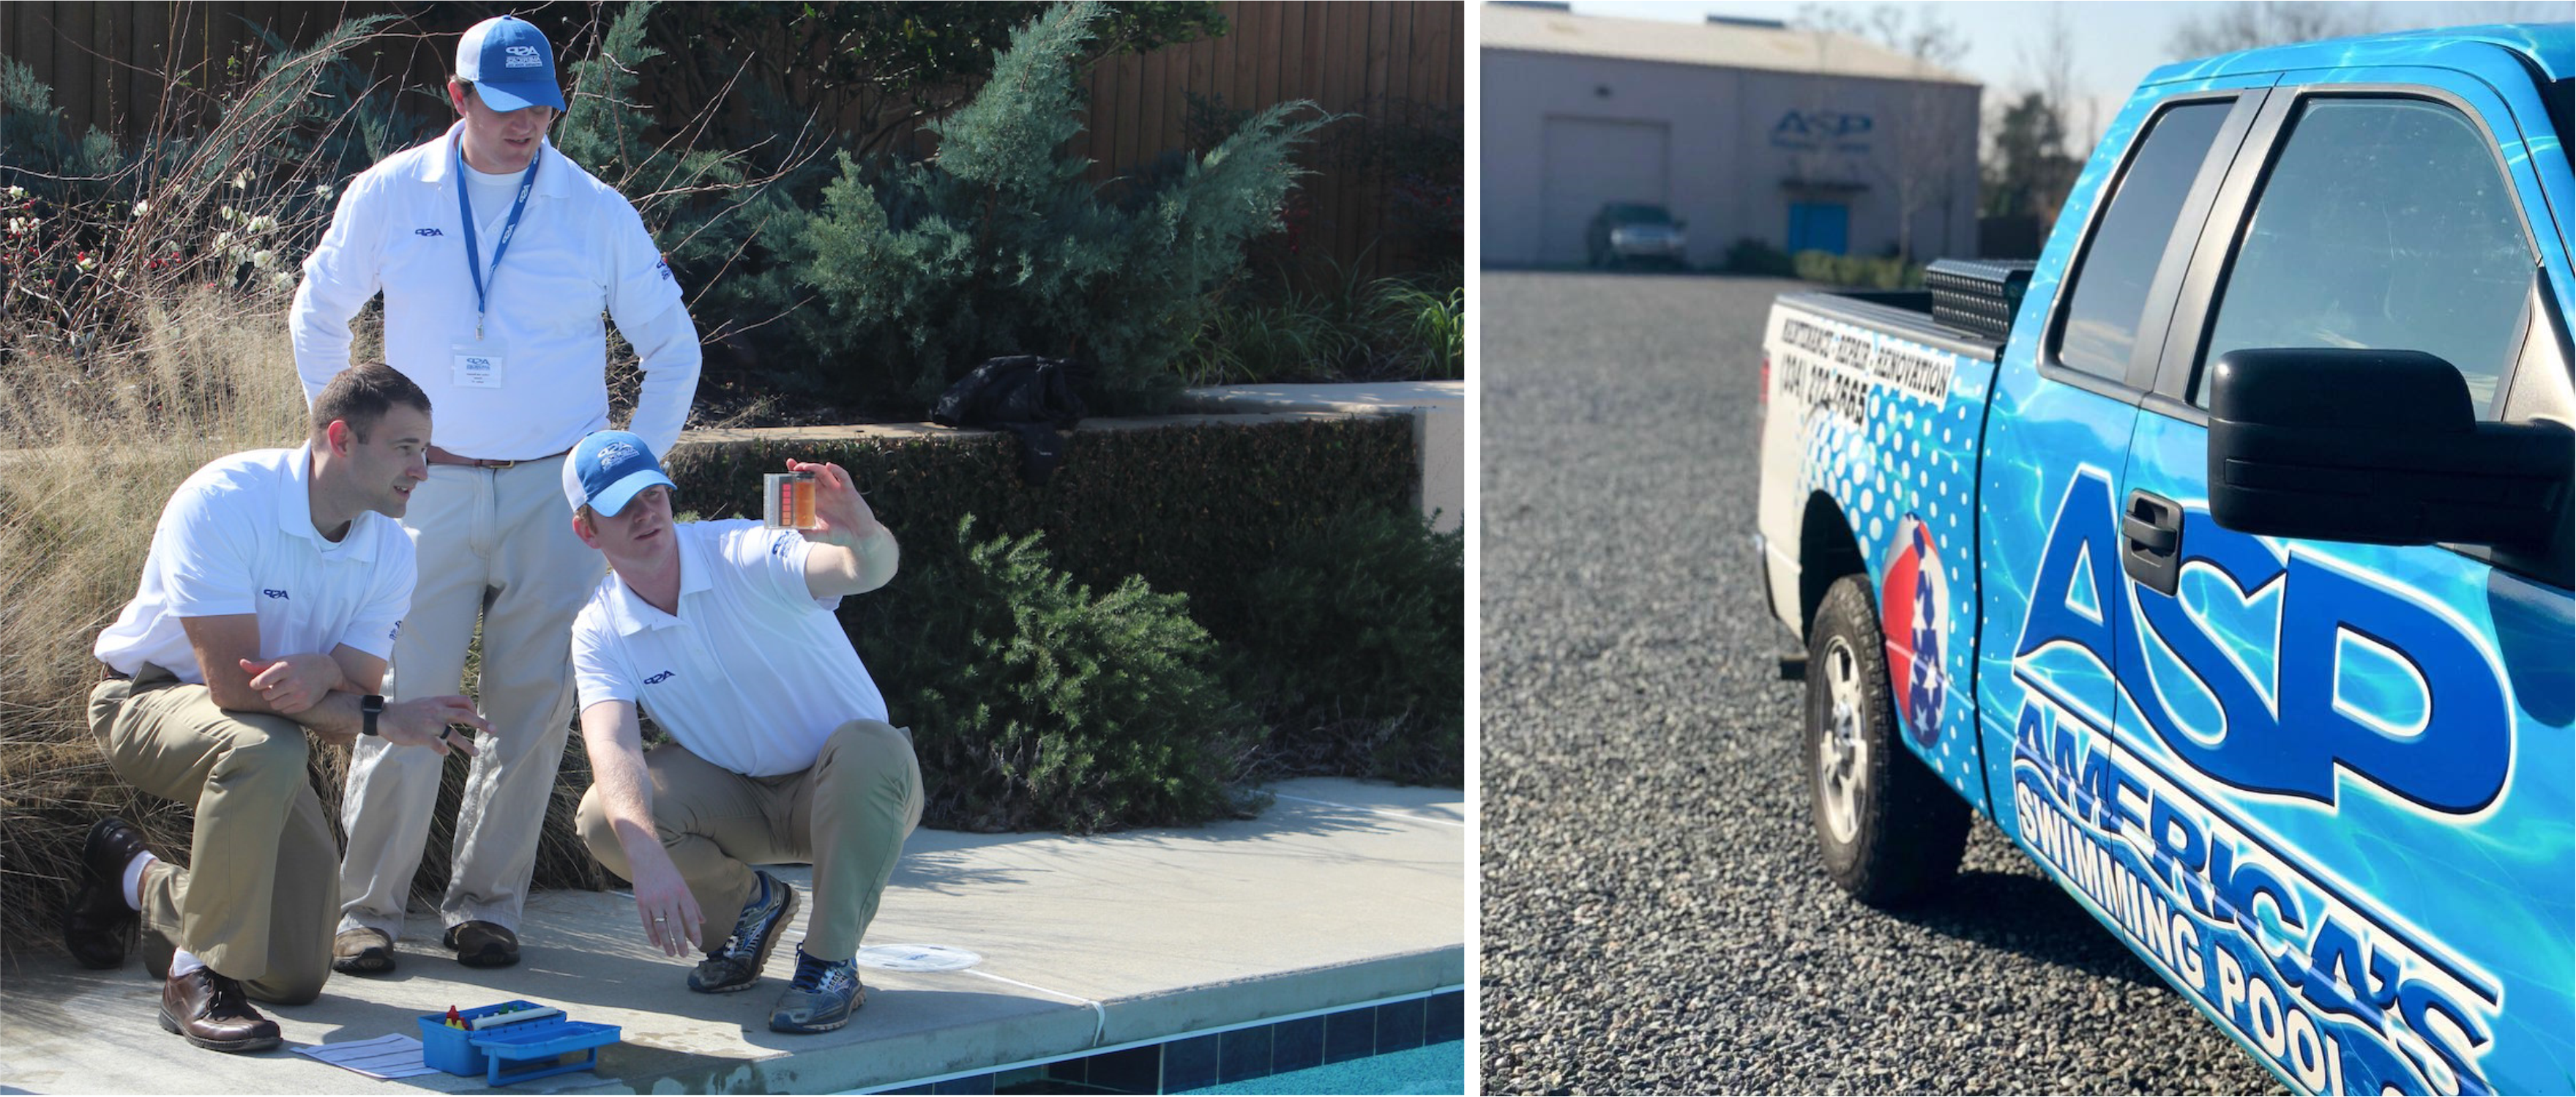 The Companyu0027s Services Include Pool Maintenance, Cleaning, Inspections,  Repairs And Renovations. ASP Was Founded By CEO Stewart Vernon In 2002 And  Is ...